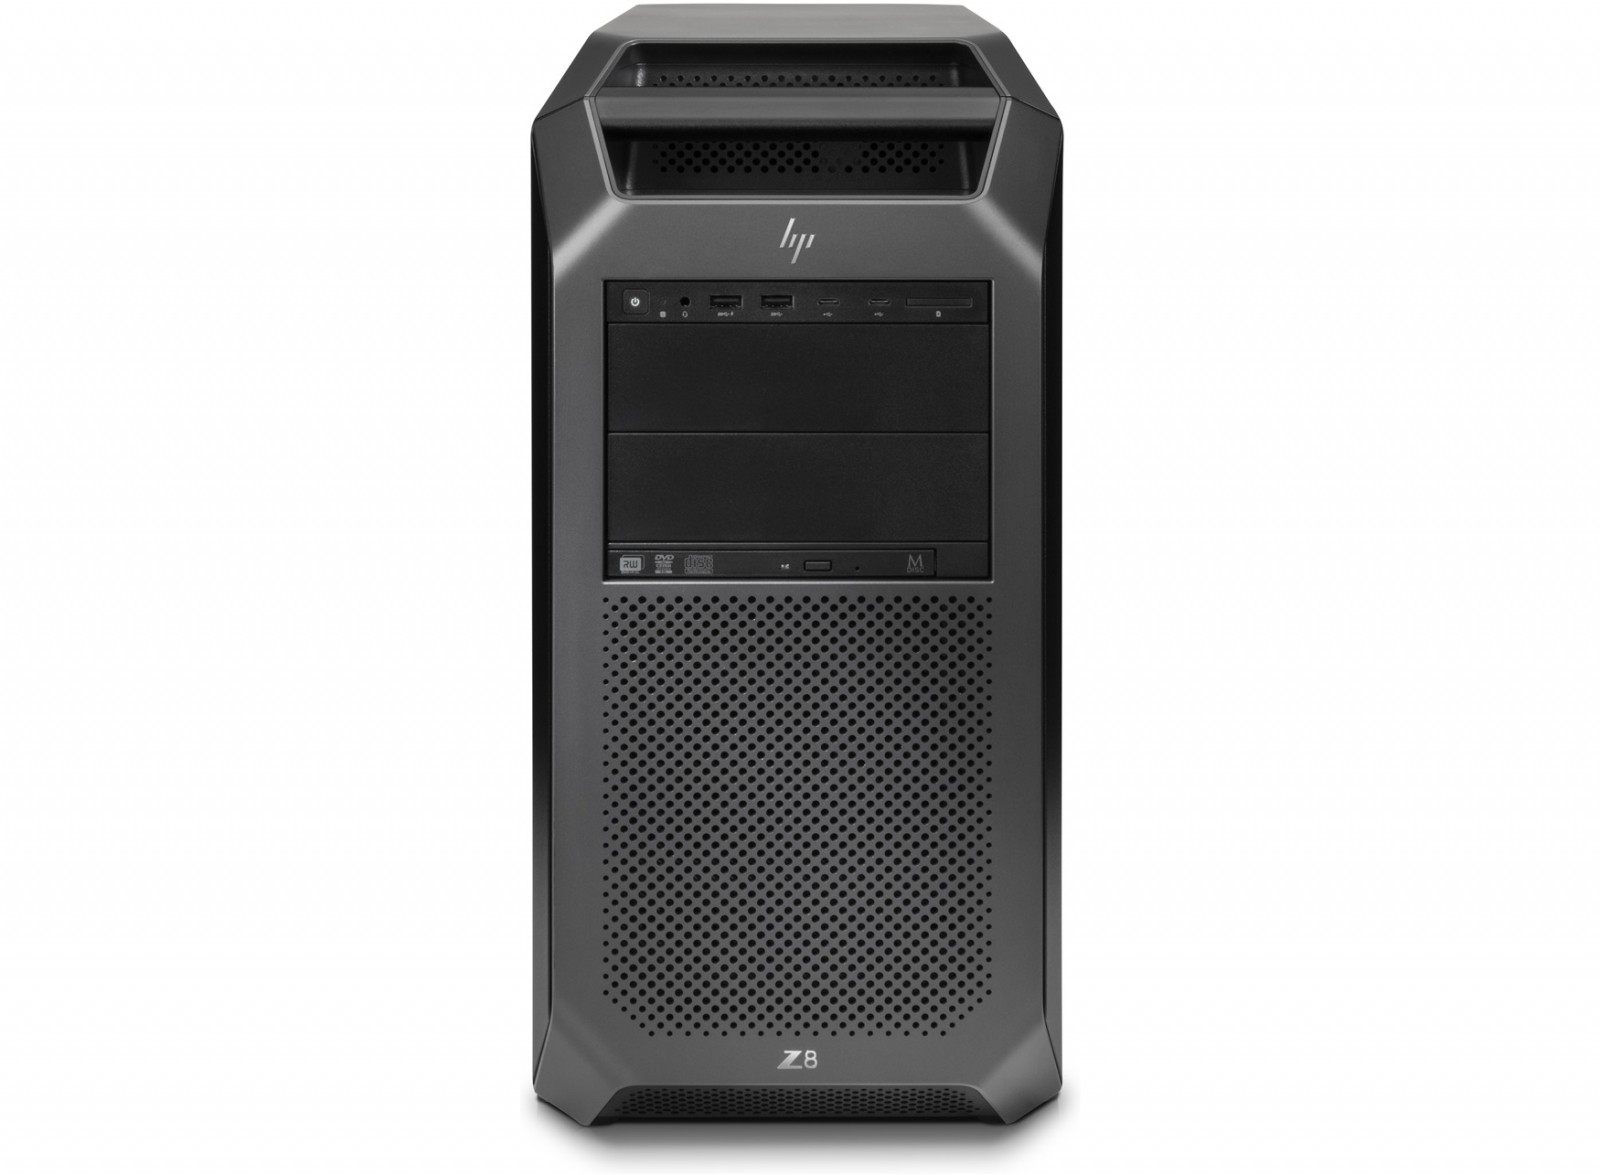 HP Z8 G4 Workstation Intel Xeon Silver 4110 2 1GHz 3 0GHz, 11 MB L3 Cache,  8Core 16 Threads 85W 32